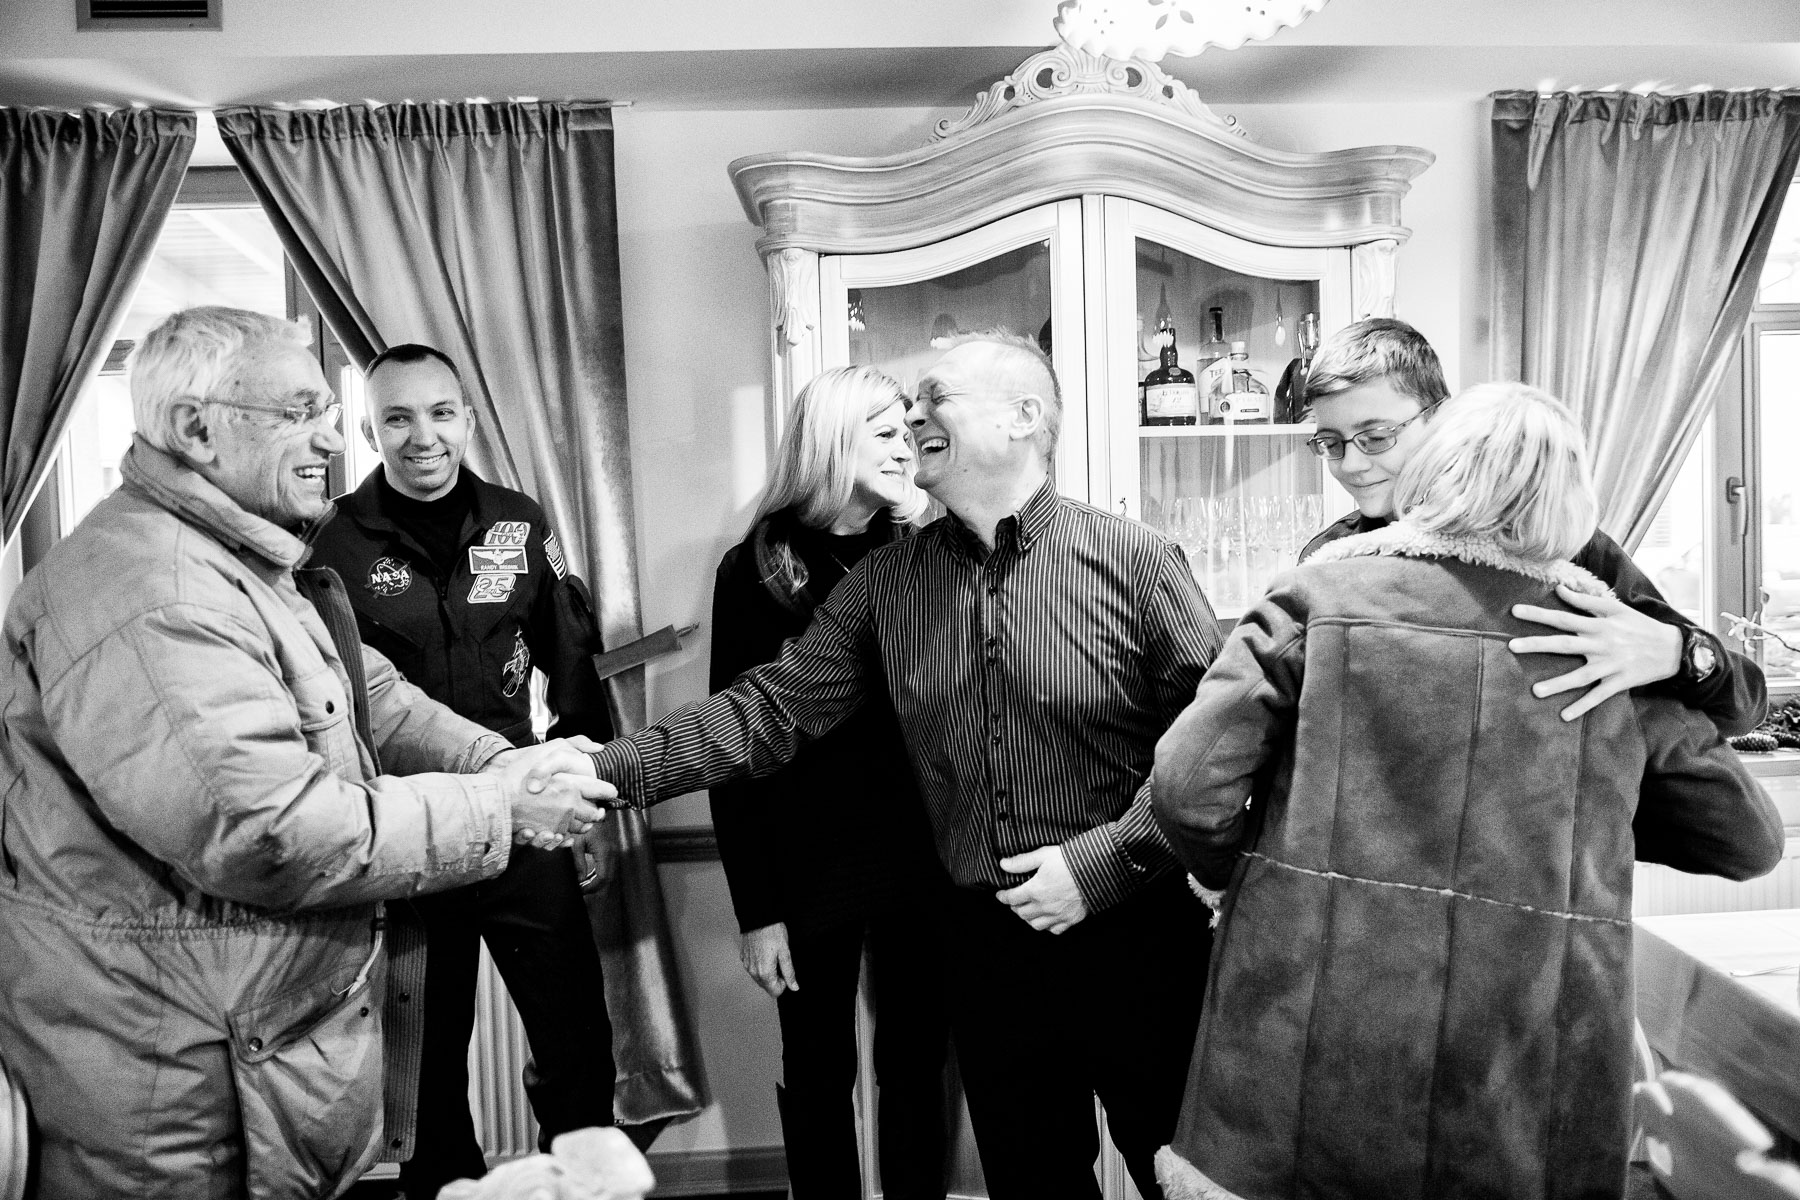 March 11, 2018 - The Bresnik family meets with relatives and the mayor of Ljubno, Slovenia, where his great-grandmother was born.